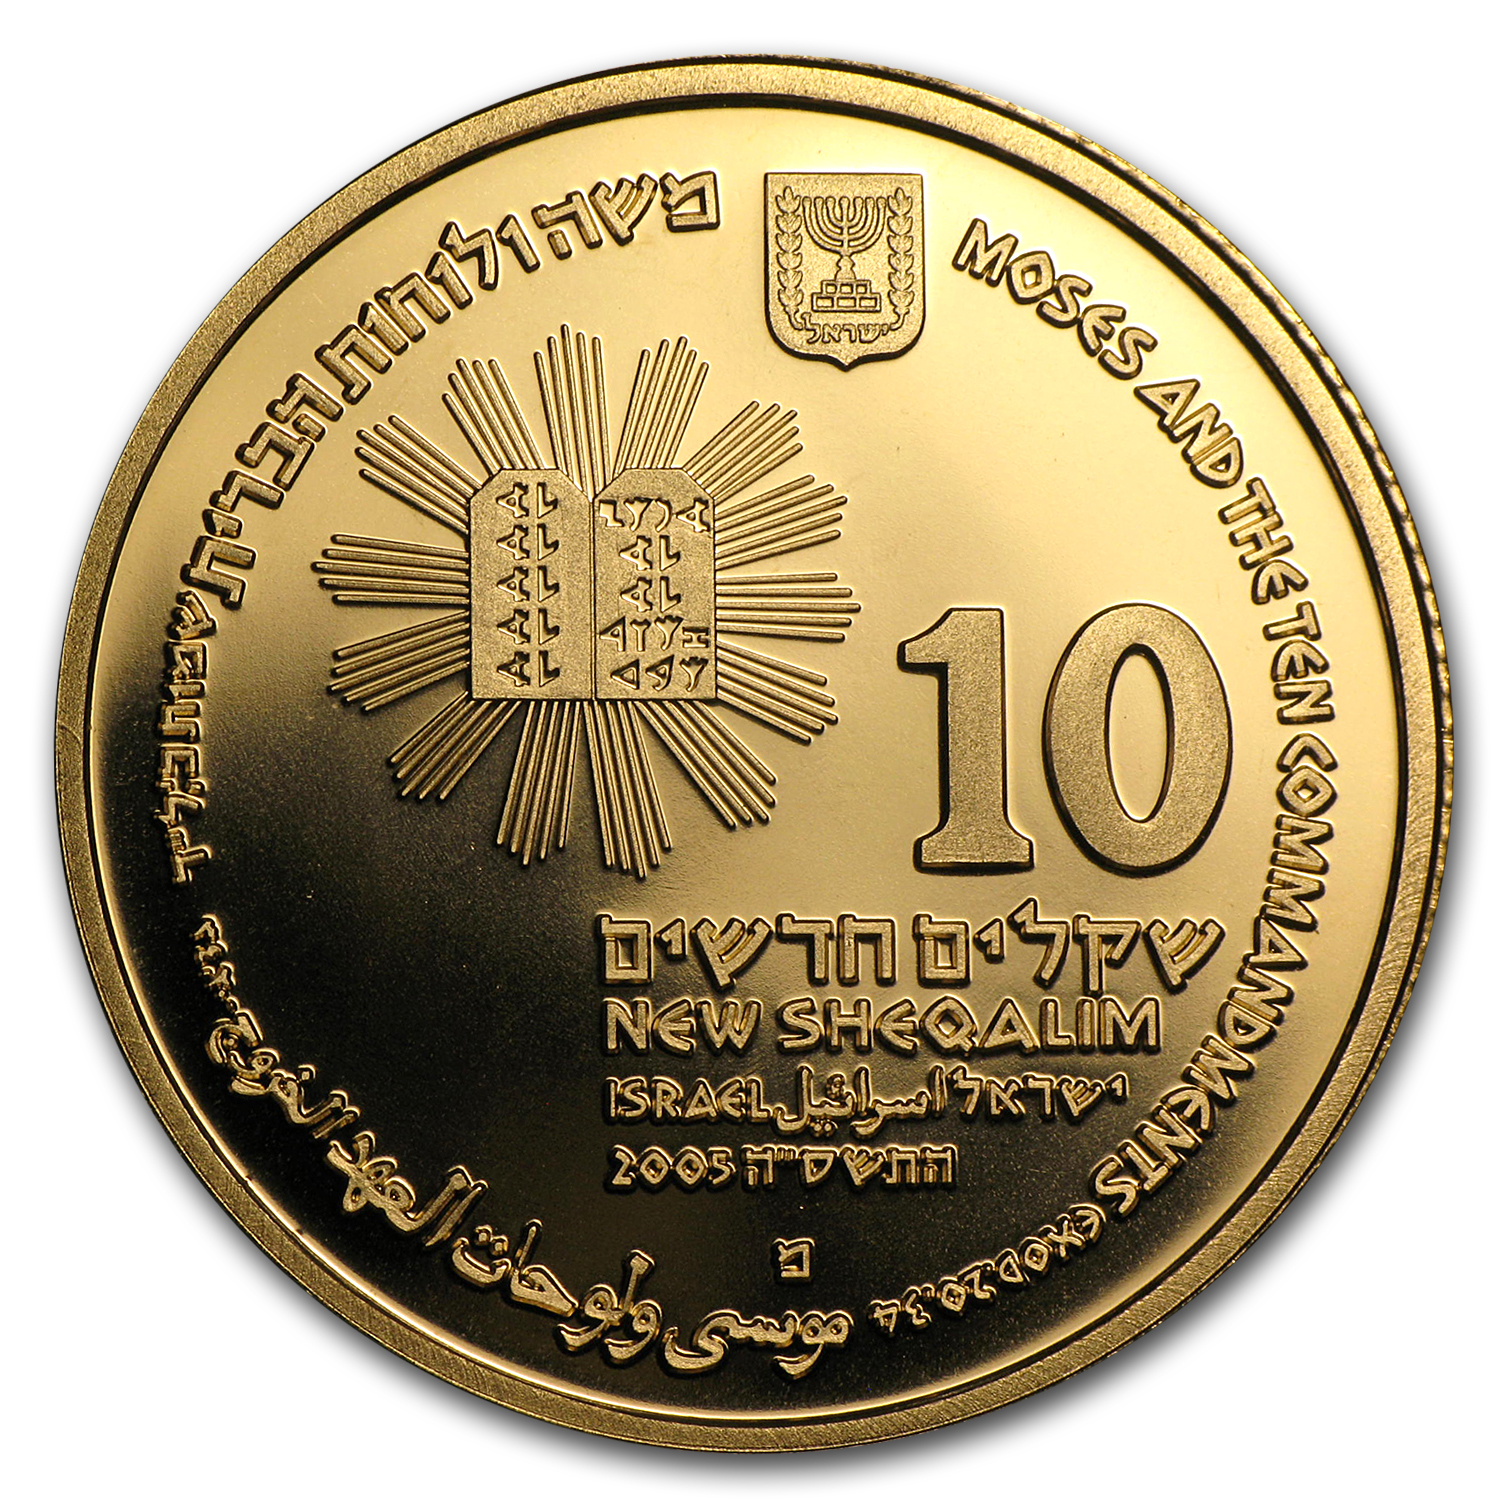 2005 Israel Moses & Ten Commandments 1/2 oz Prf Gold (box & CoA)